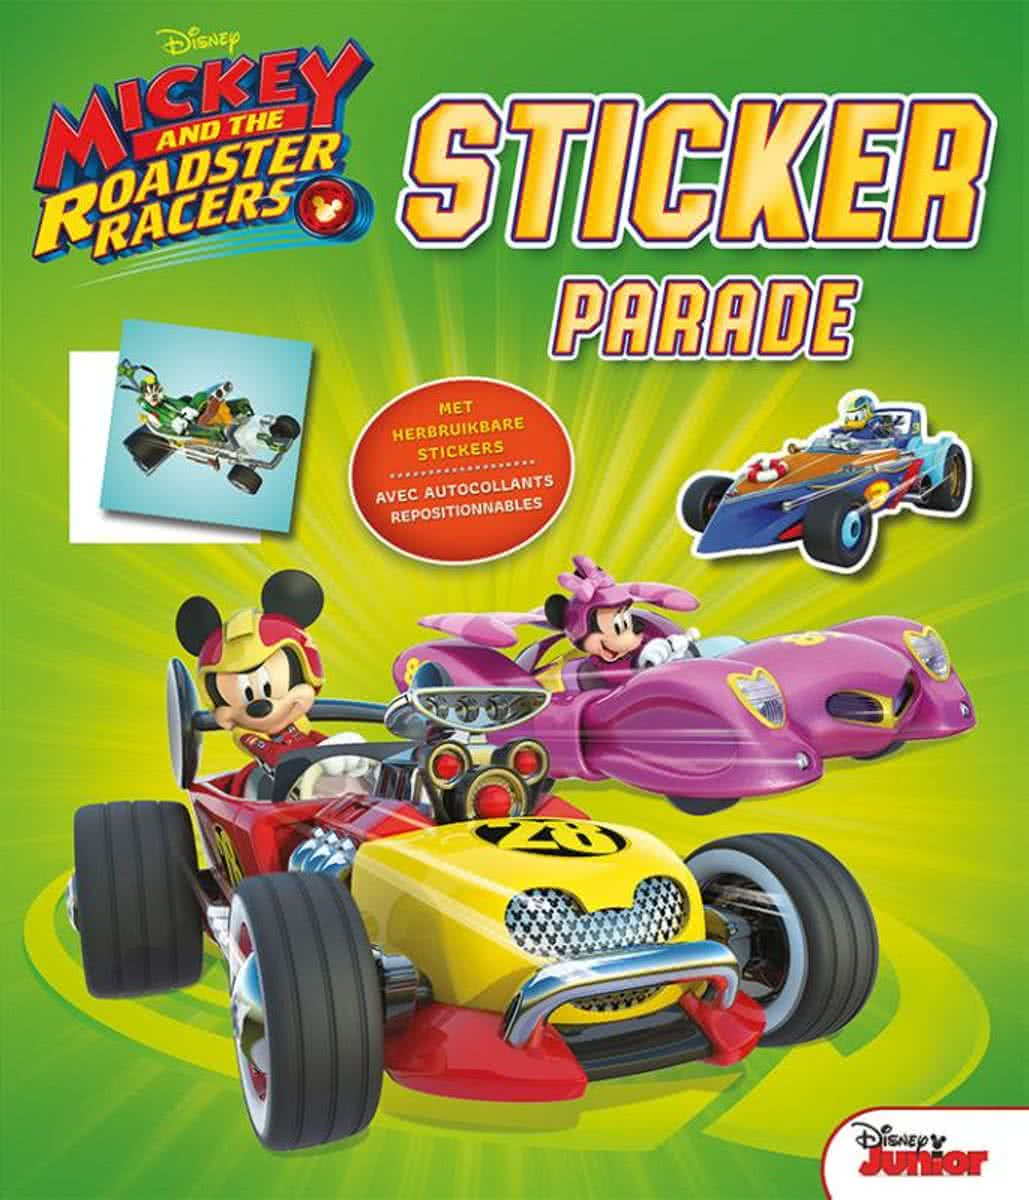 Sticker Parade Mickey and the Roadster Racers